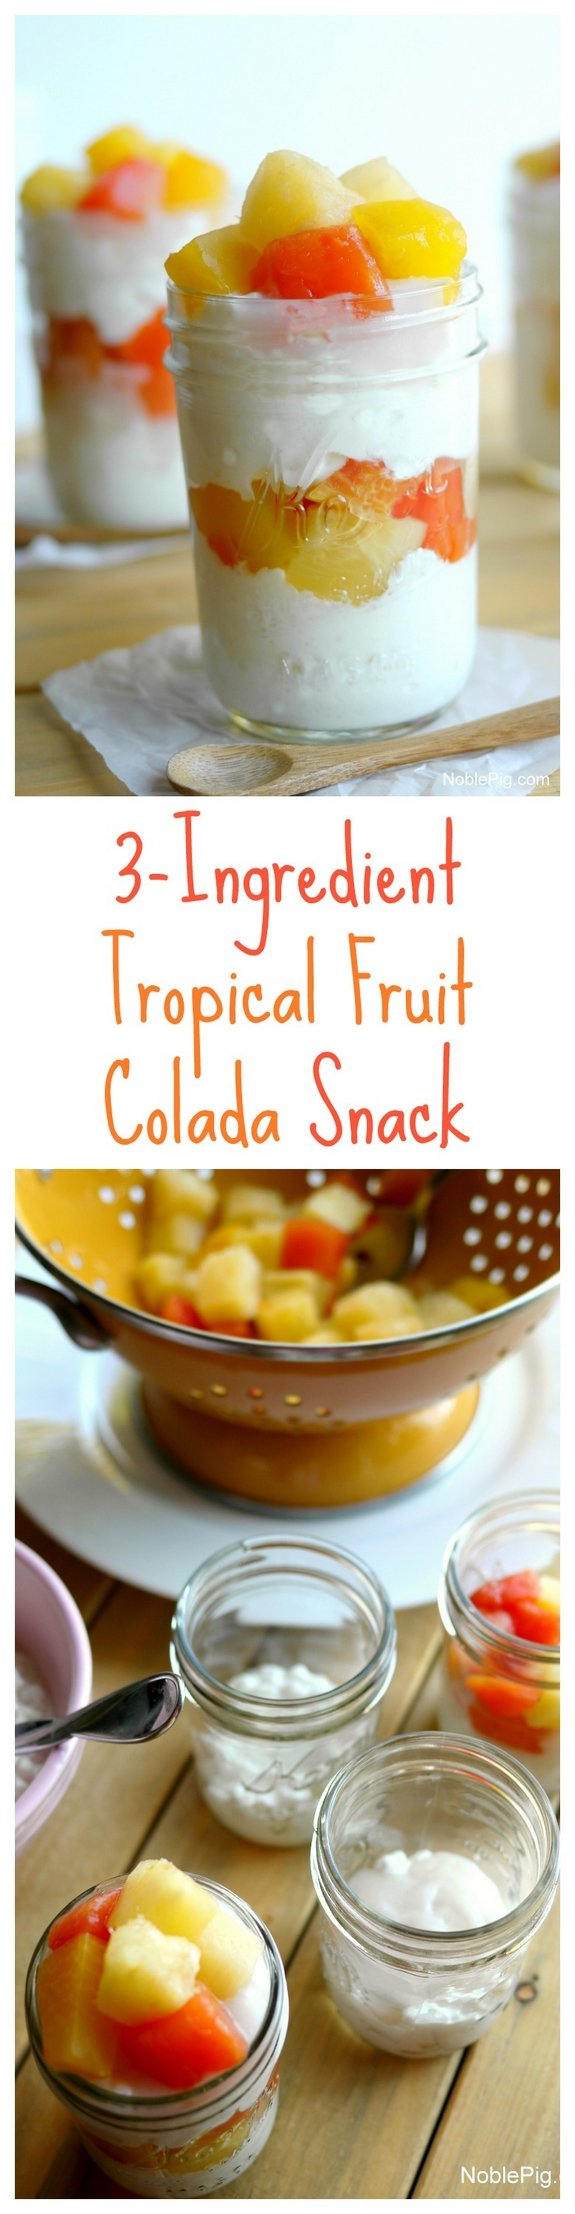 3 Ingredient Tropical Friut Colada Snack sometimes deliciosness is easy